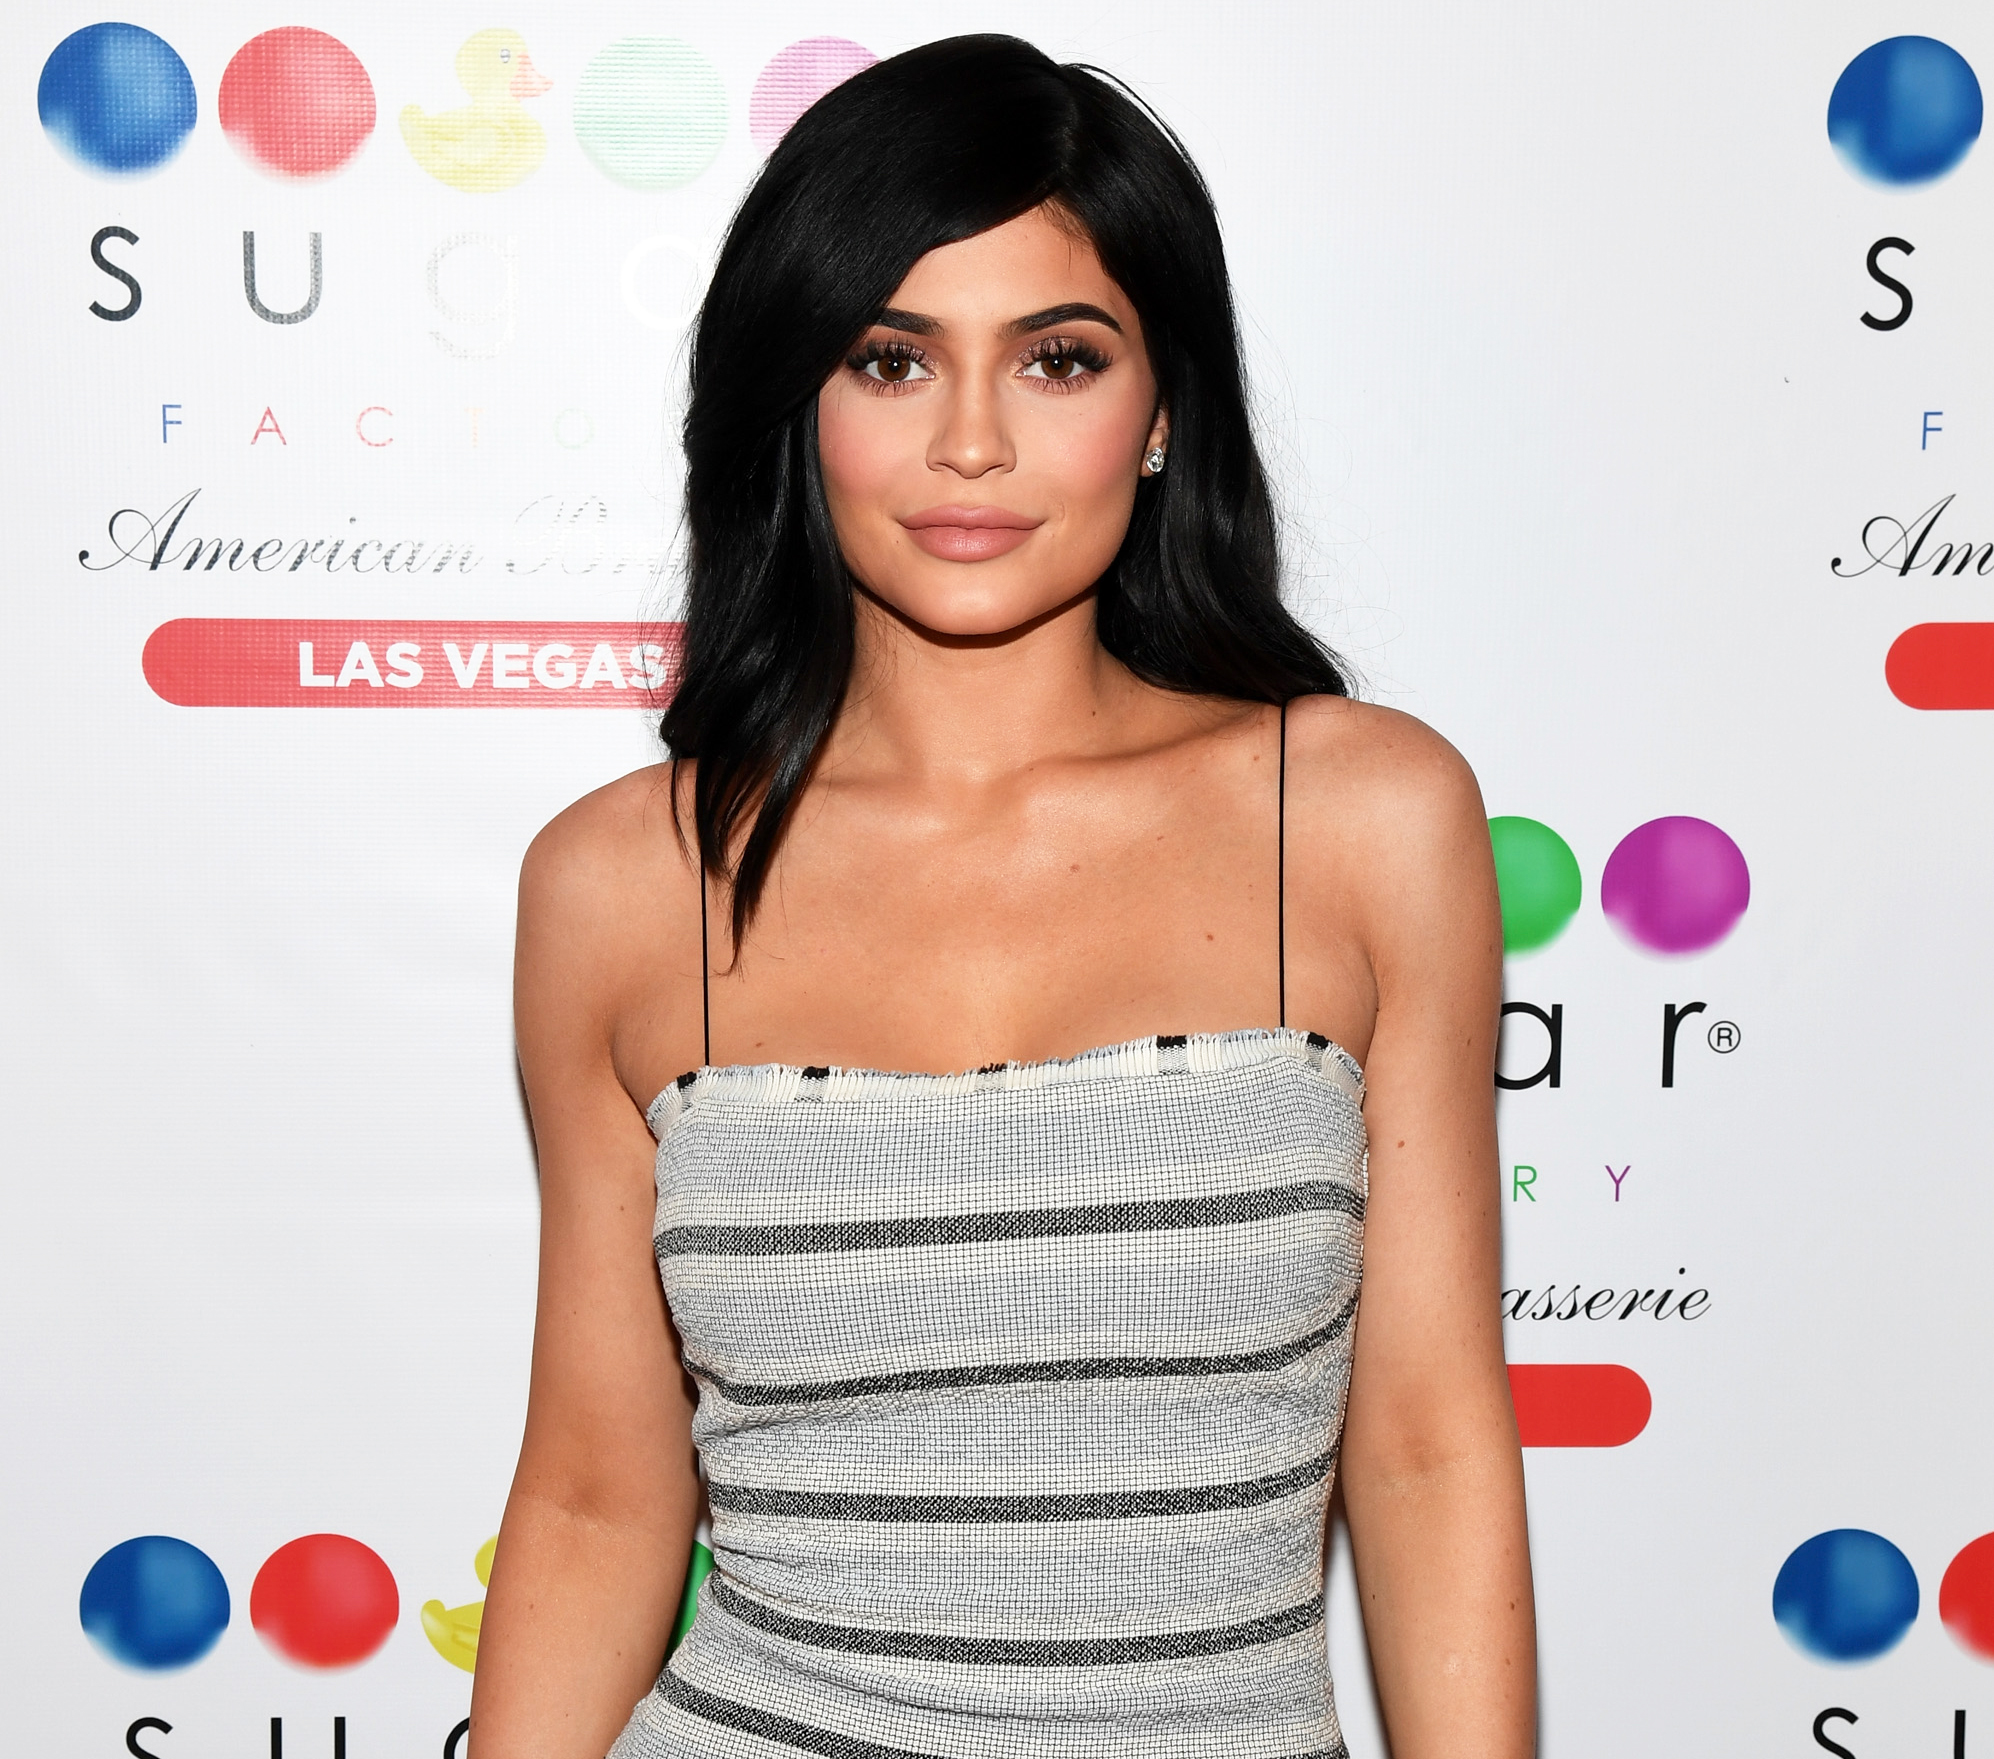 Kylie Jenner's Family Gifted Her a Booty Ice Sculpture for Her 20th Birthday